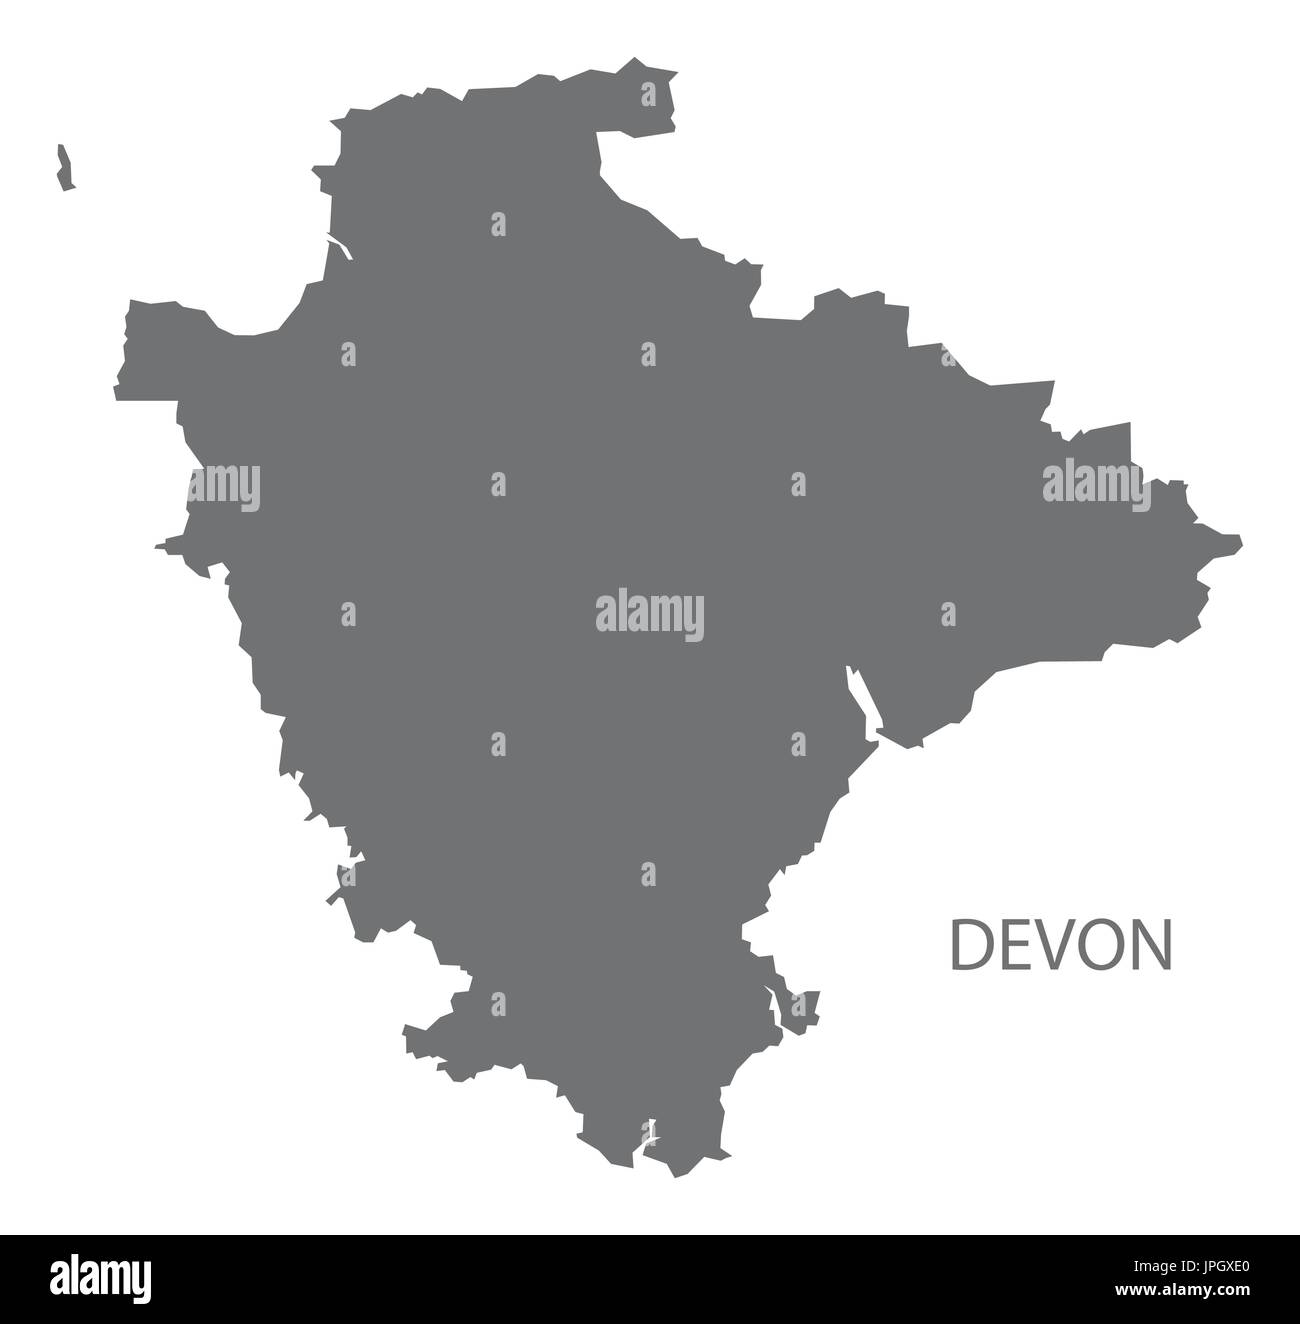 County Map Of England.Devon County Map England Uk Grey Illustration Silhouette Shape Stock